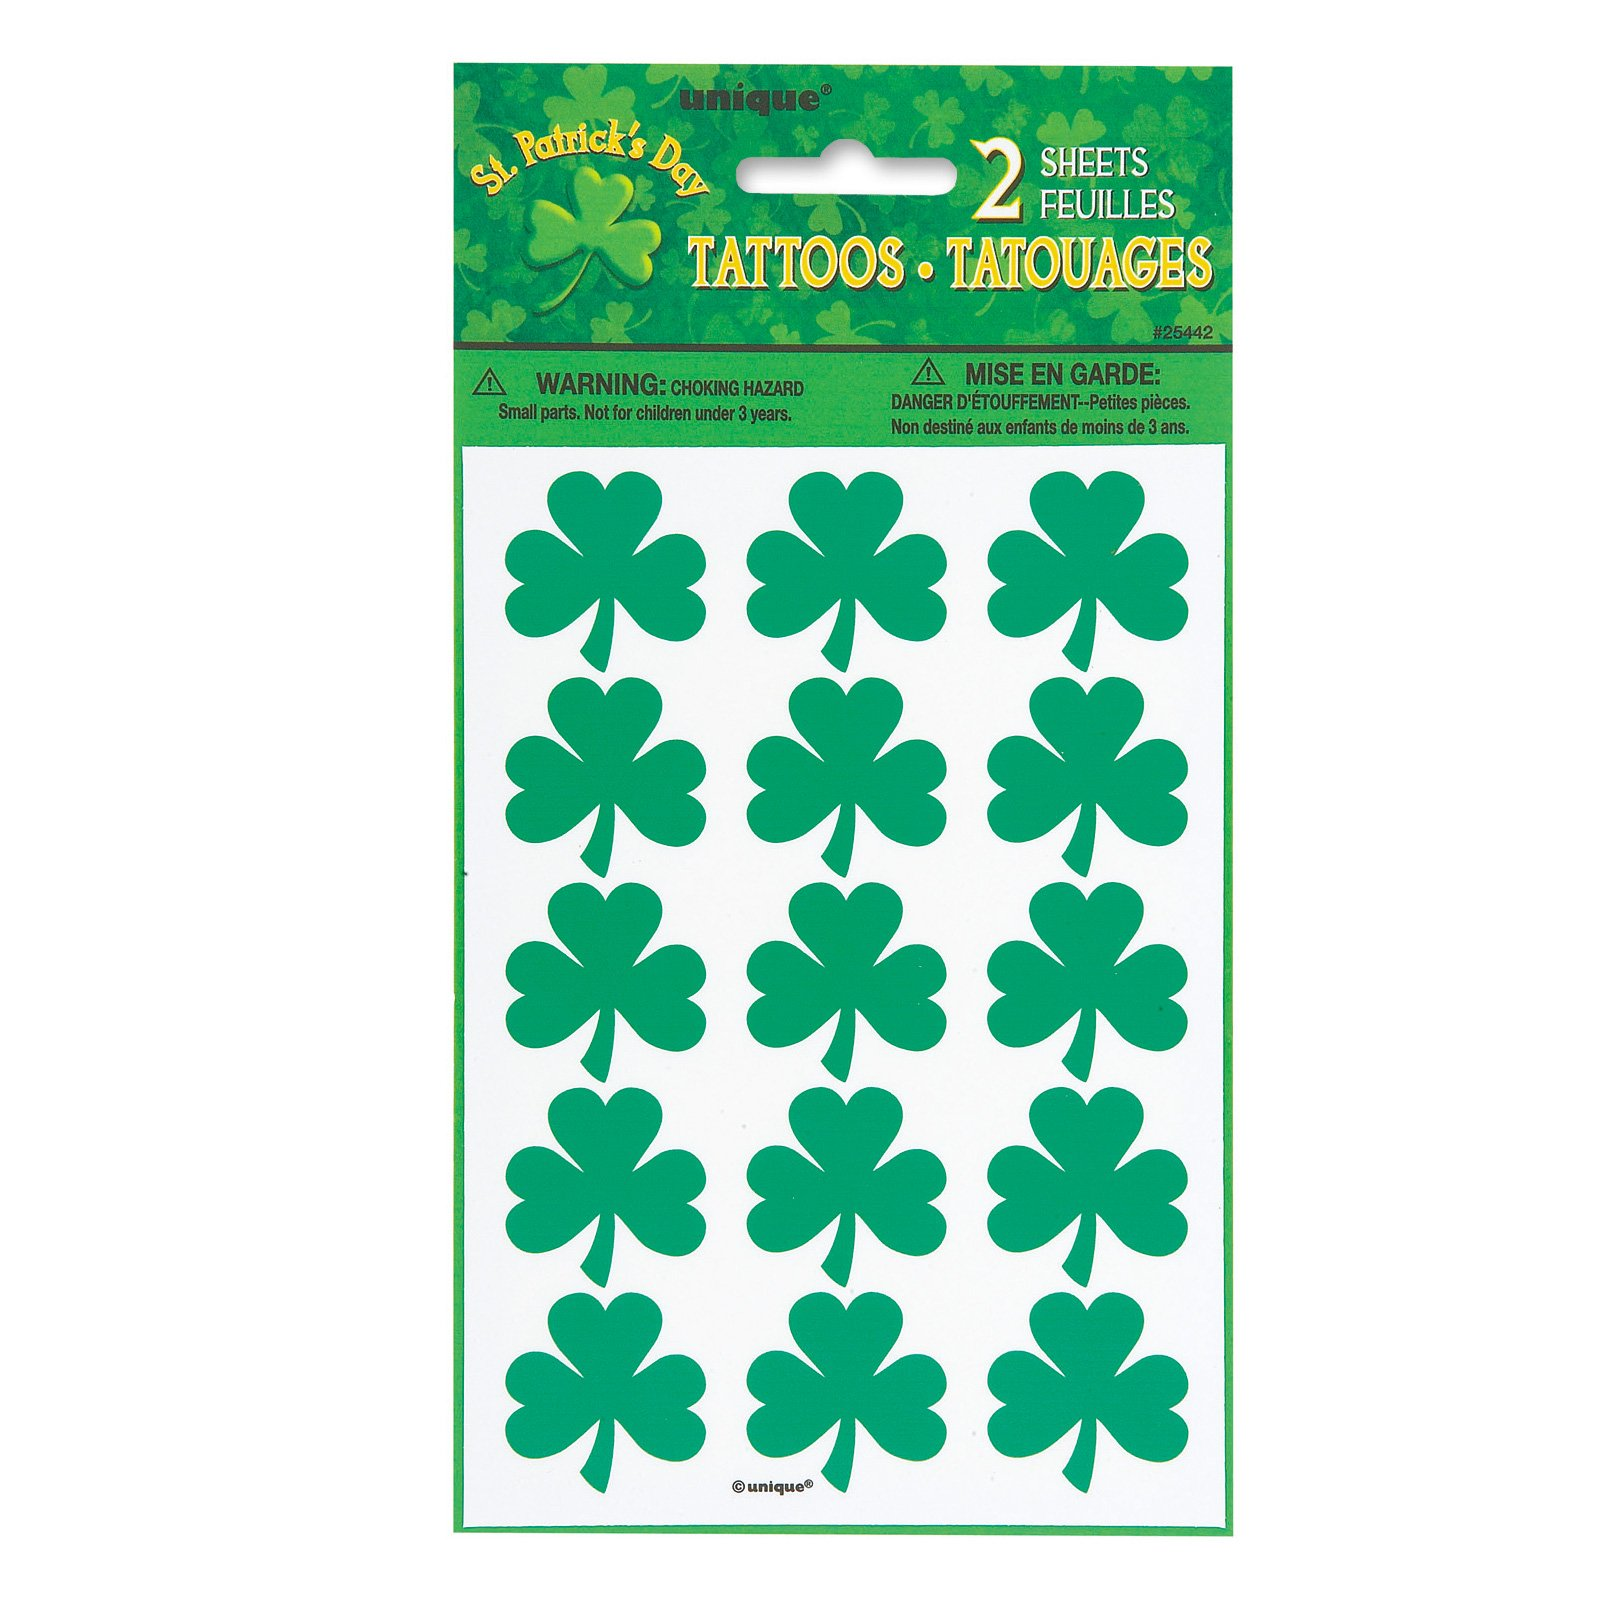 Shamrock Tattoo Sheets (2 count)